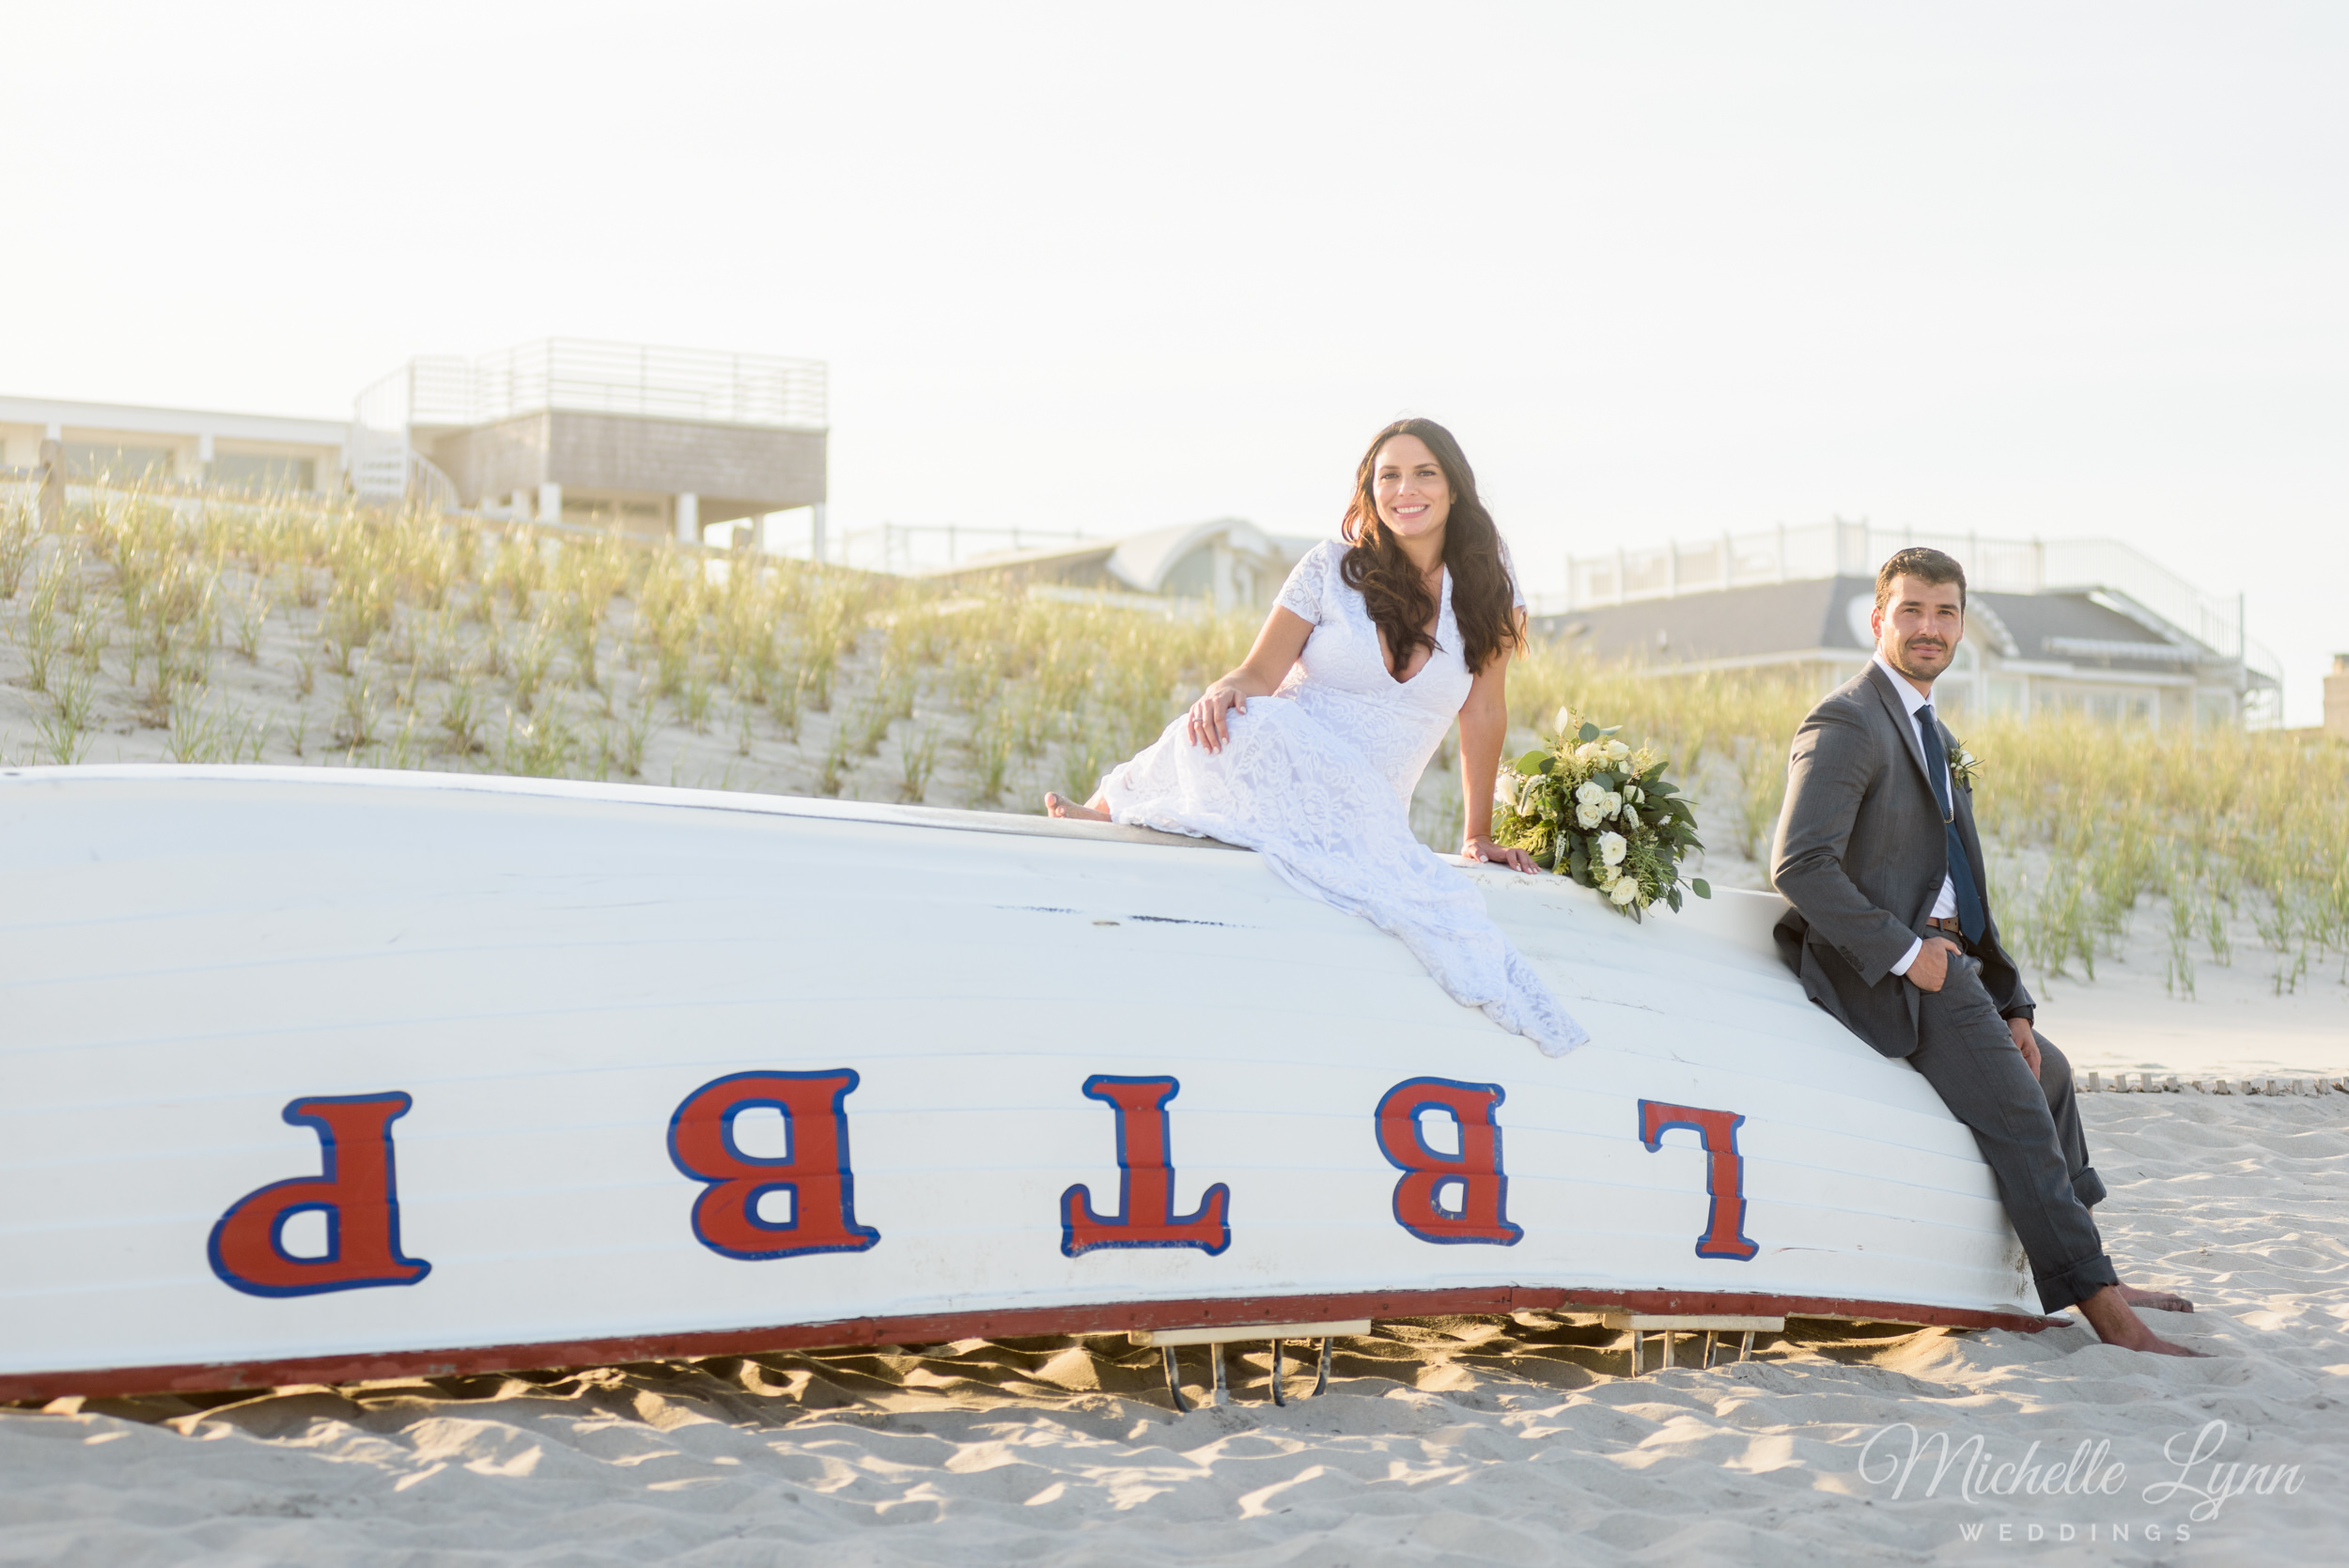 mlw-brant-beach-wedding-photography-1.jpg